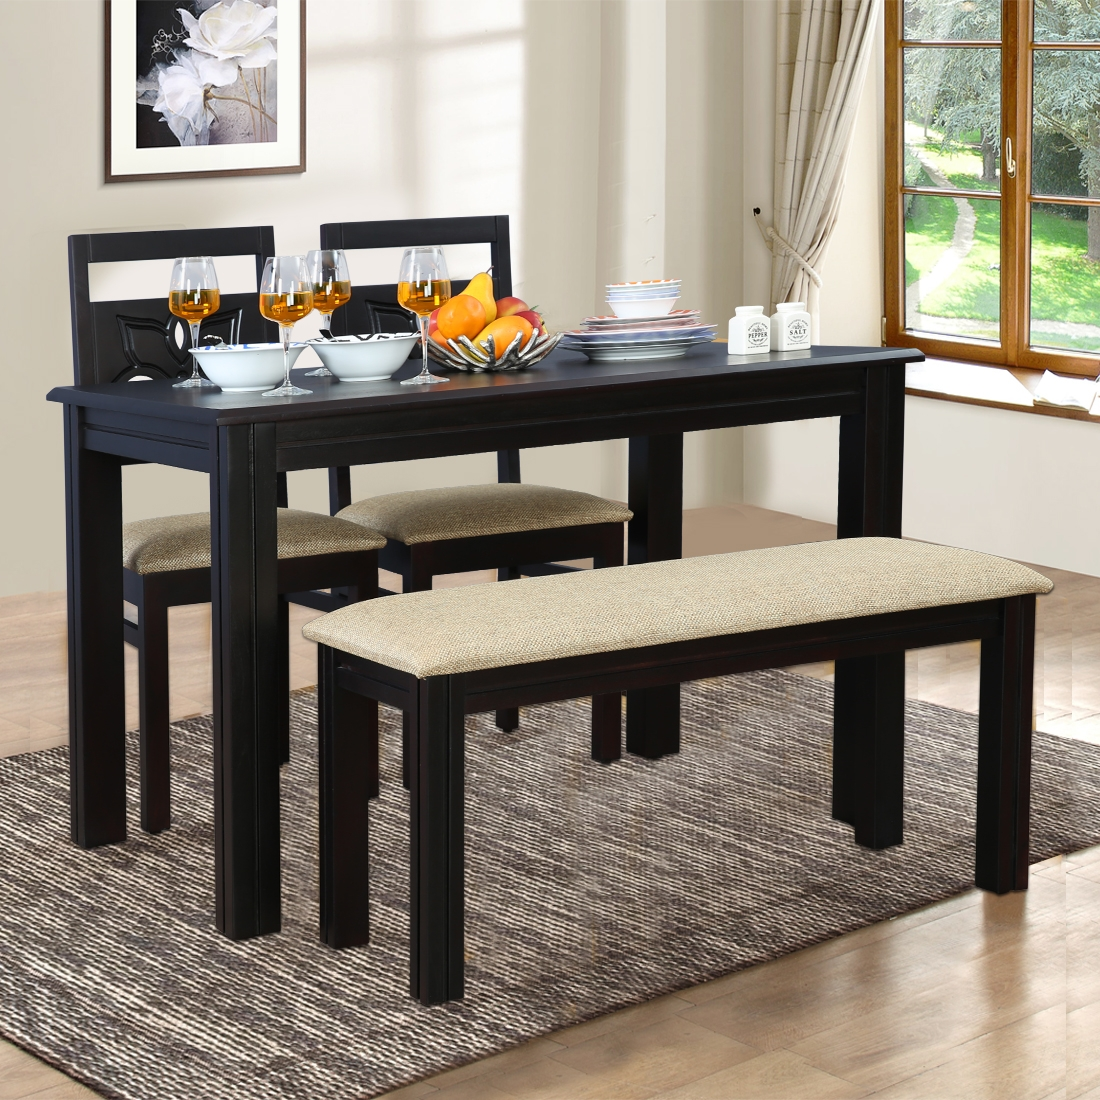 Buy Flora Solid Wood Four Seater Dining Set With Bench In Walnut Color By Hometown Online At Best Price Hometown